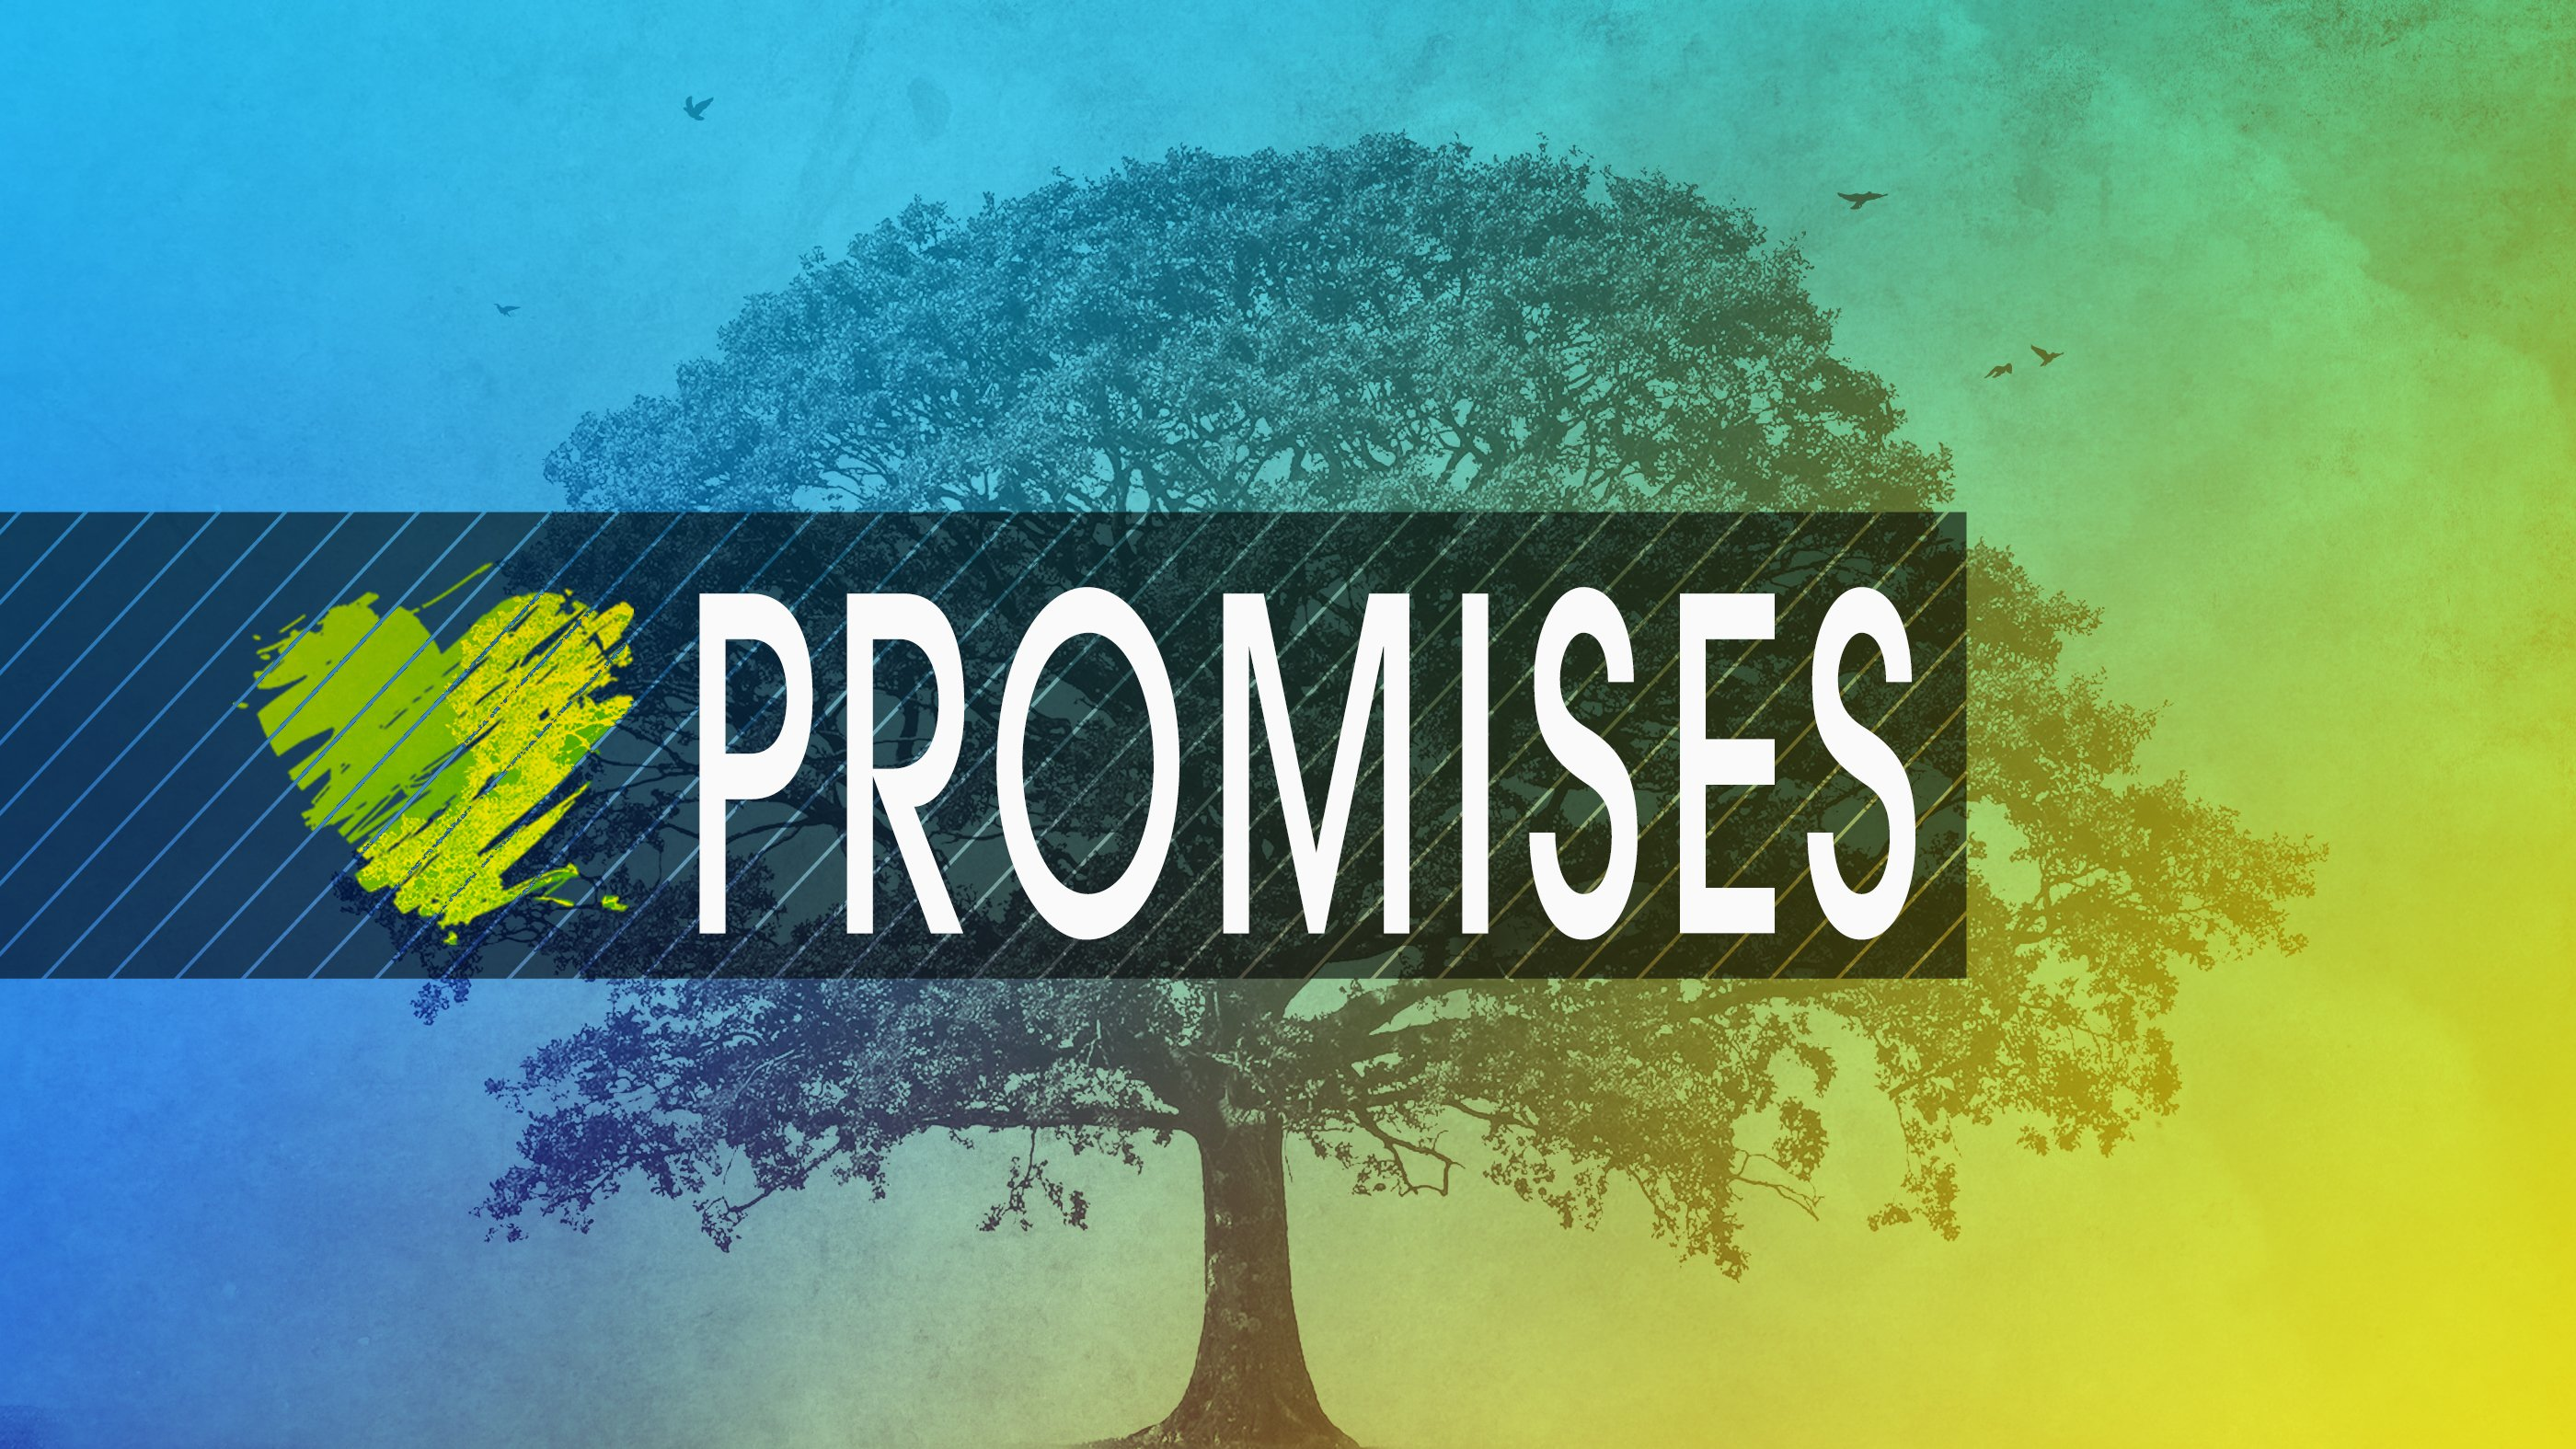 The Year of Promises. 2019 at Heartland Christian Center. #GodPromises